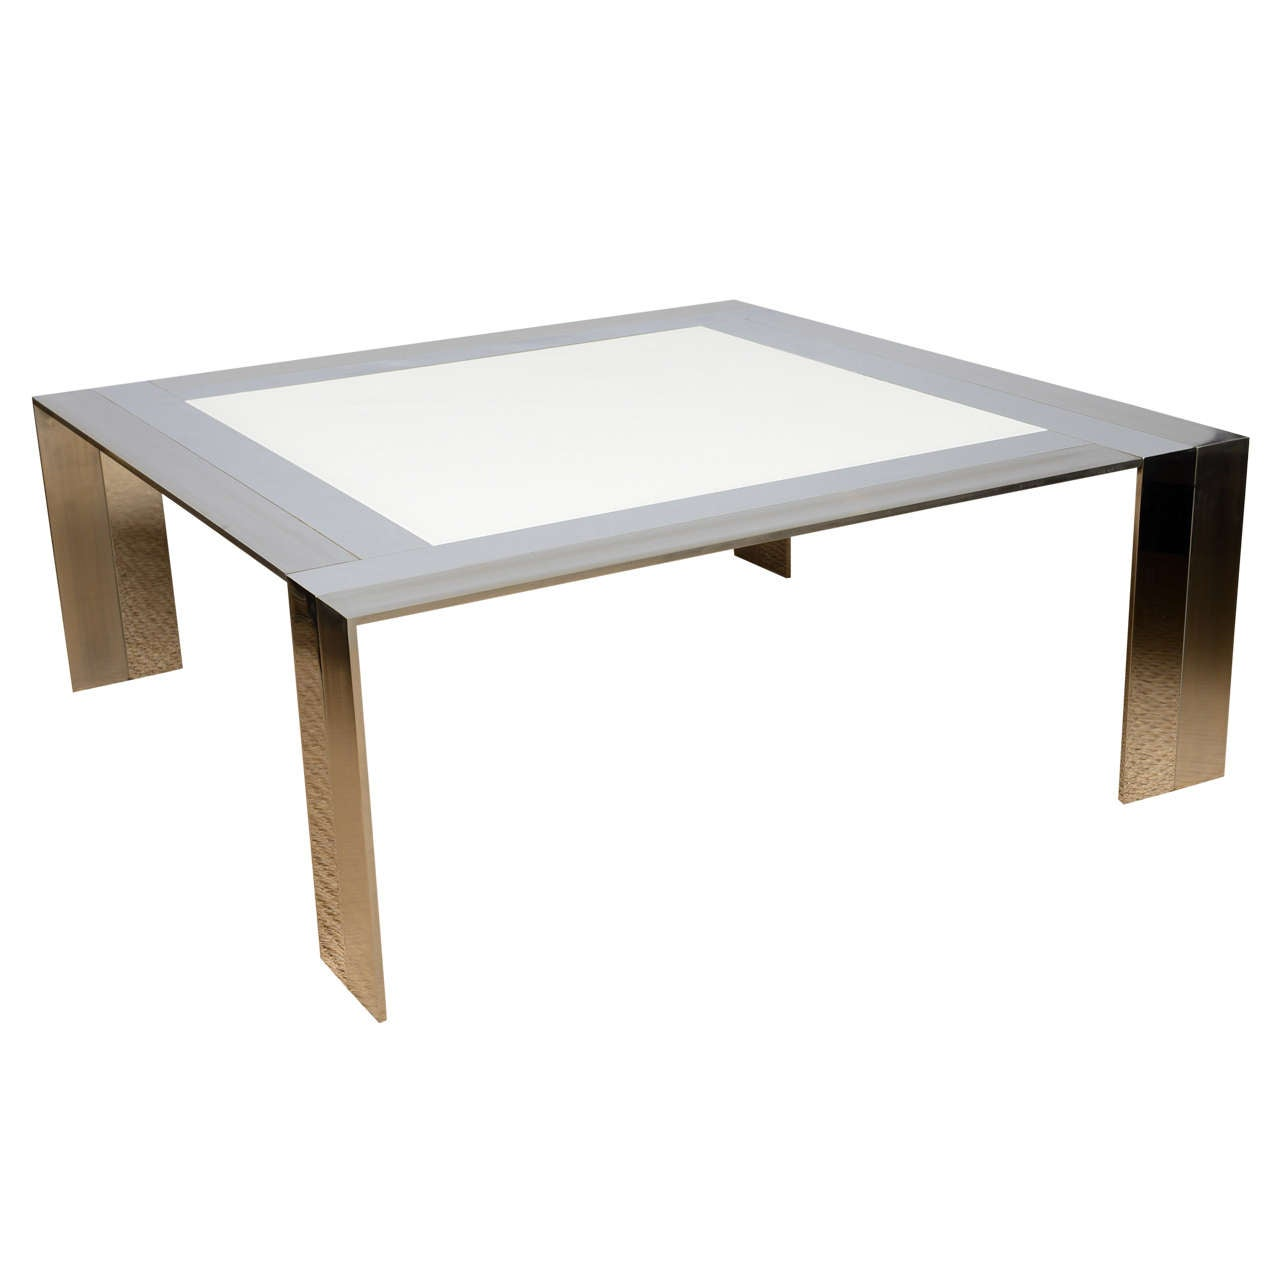 Italian Square Stainless Steel And White Glass Square Cocktail Table For Sale At 1stdibs